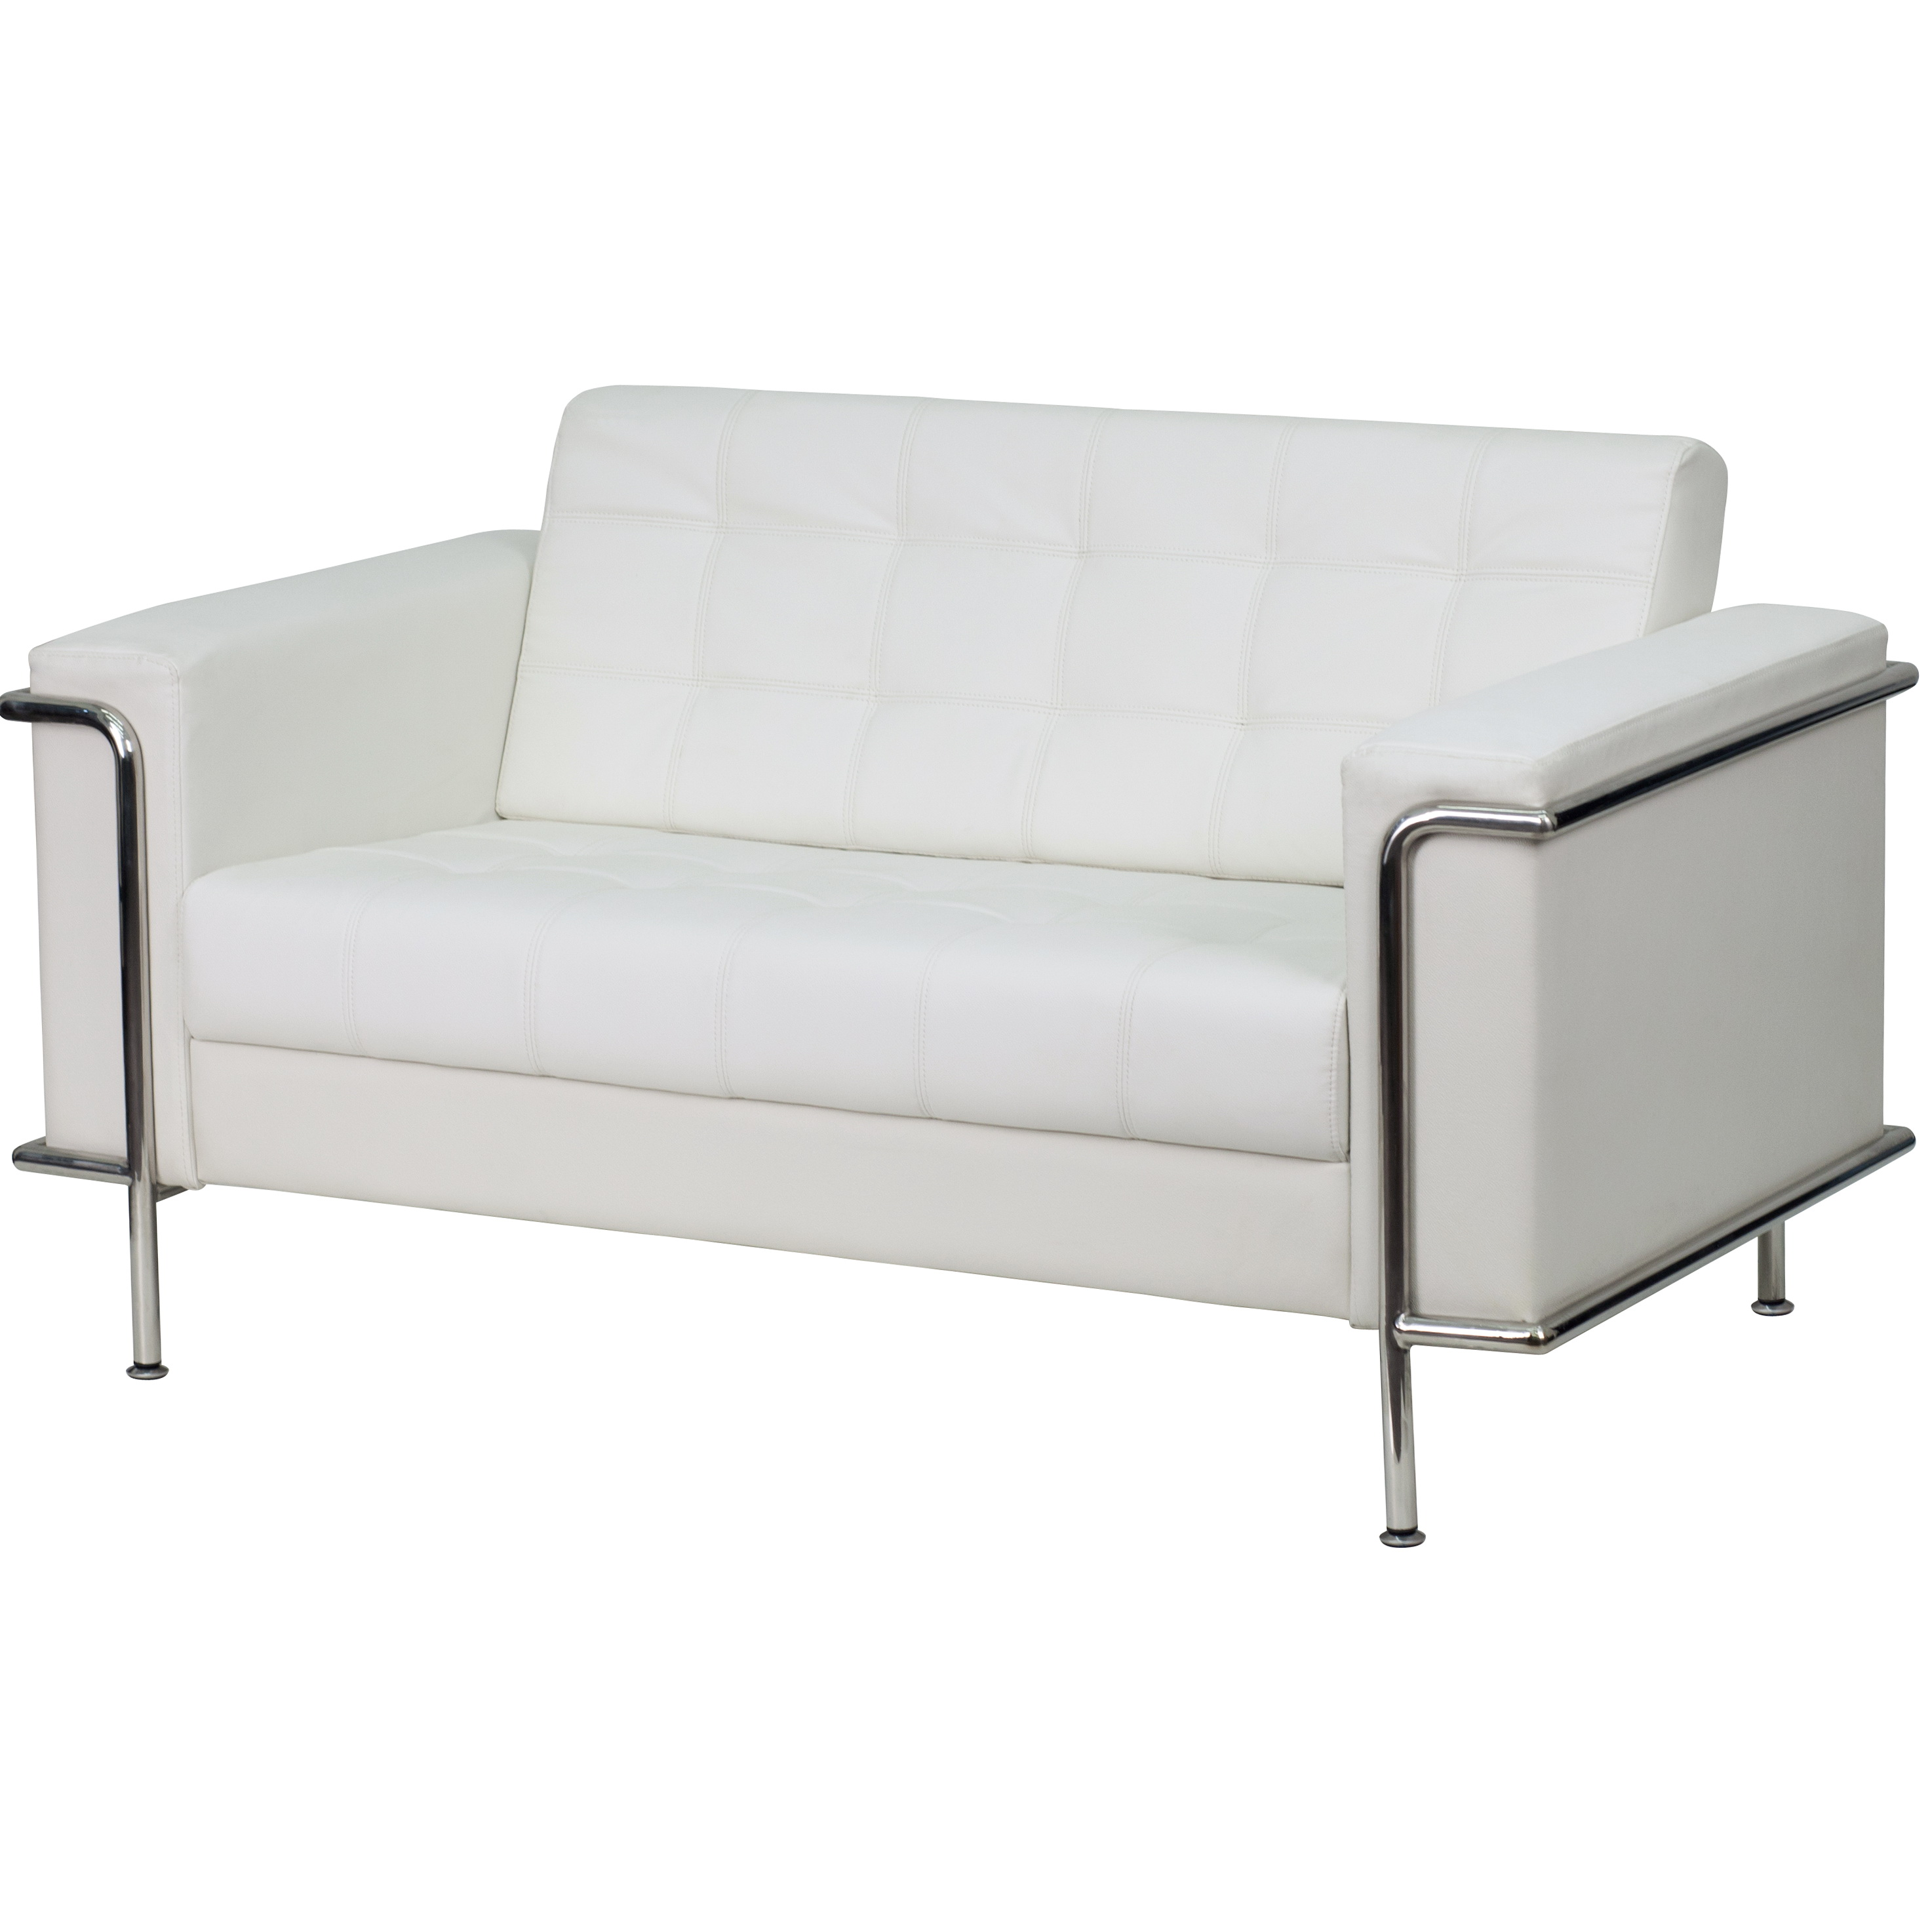 Hercules Lesley Series Contemporary Leather Sofa